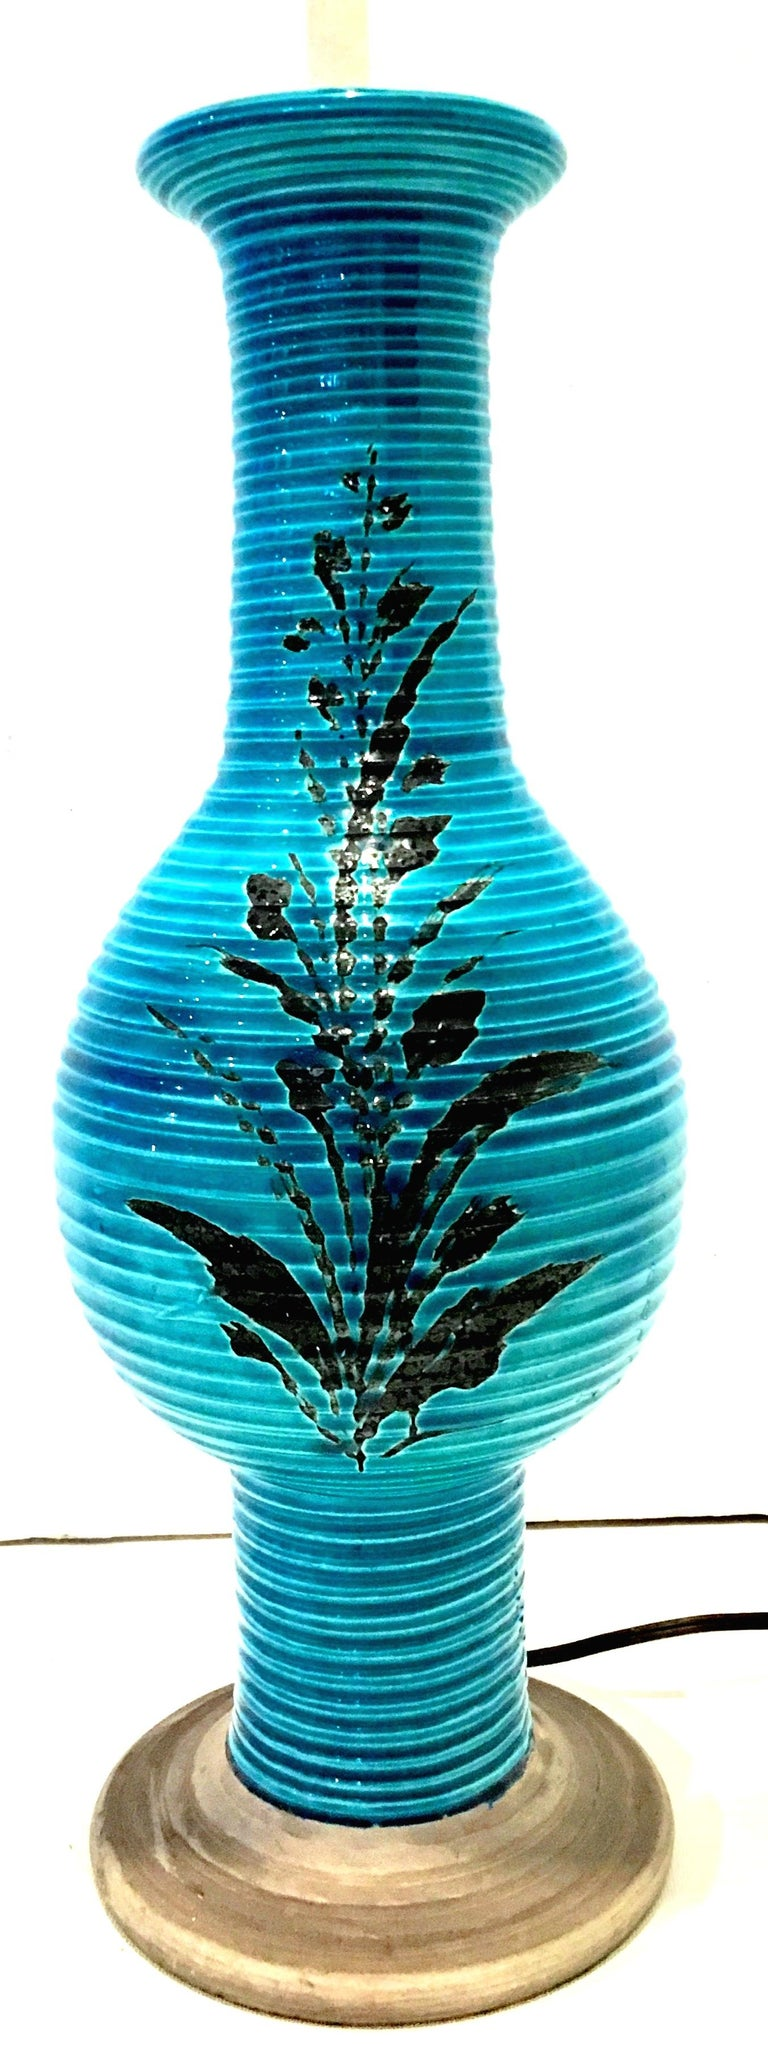 1960s Italian Cerulean Blue & Black Ceramic Glaze Pottery Lamp by, Bitossi In Good Condition For Sale In West Palm Beach, FL